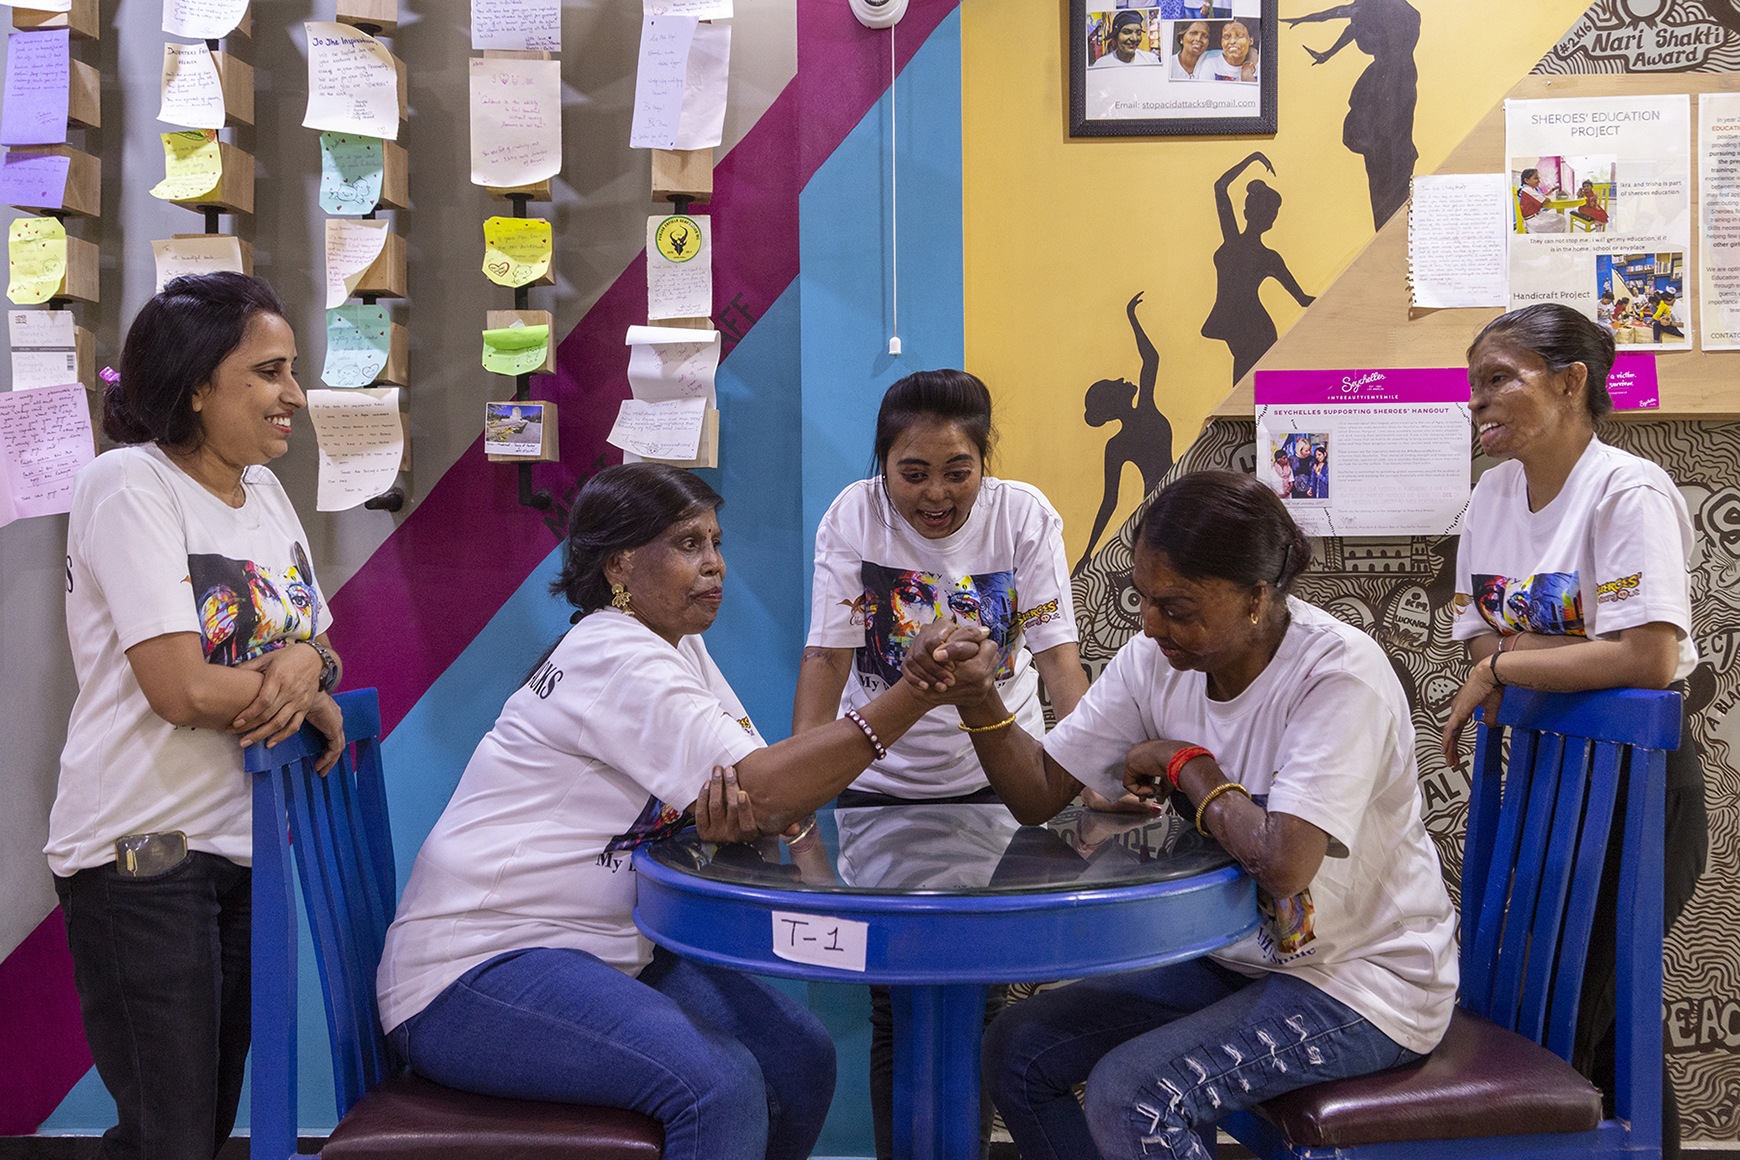 Sitting in blue plastic chairs on either side of a blue plastic table, Madhu on the left and Bala on the right are arm-wrestling while the others watch the contest. Rukaiya stands leaning against the back of Madhu's chair and Roopa similarly behind Bala's chair. Dolly faces us, leaning forward with both hands resting on the table and looking directly at the clutched right hands of the contestants. Behind them hanging on the wall are handwritten notes and posters.